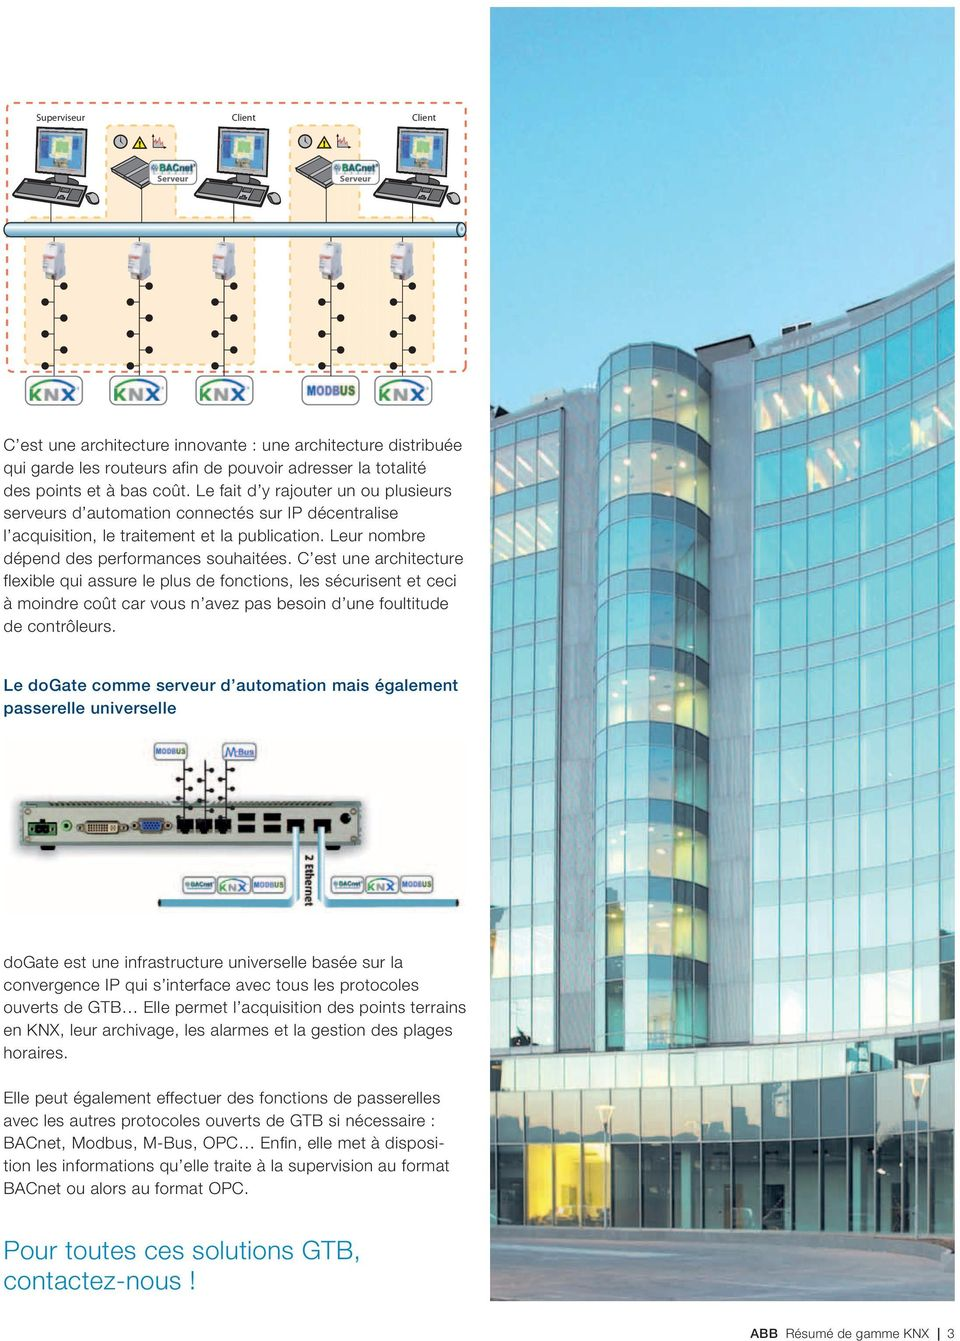 Knx wago of architecture knx for Architecture totalitaire